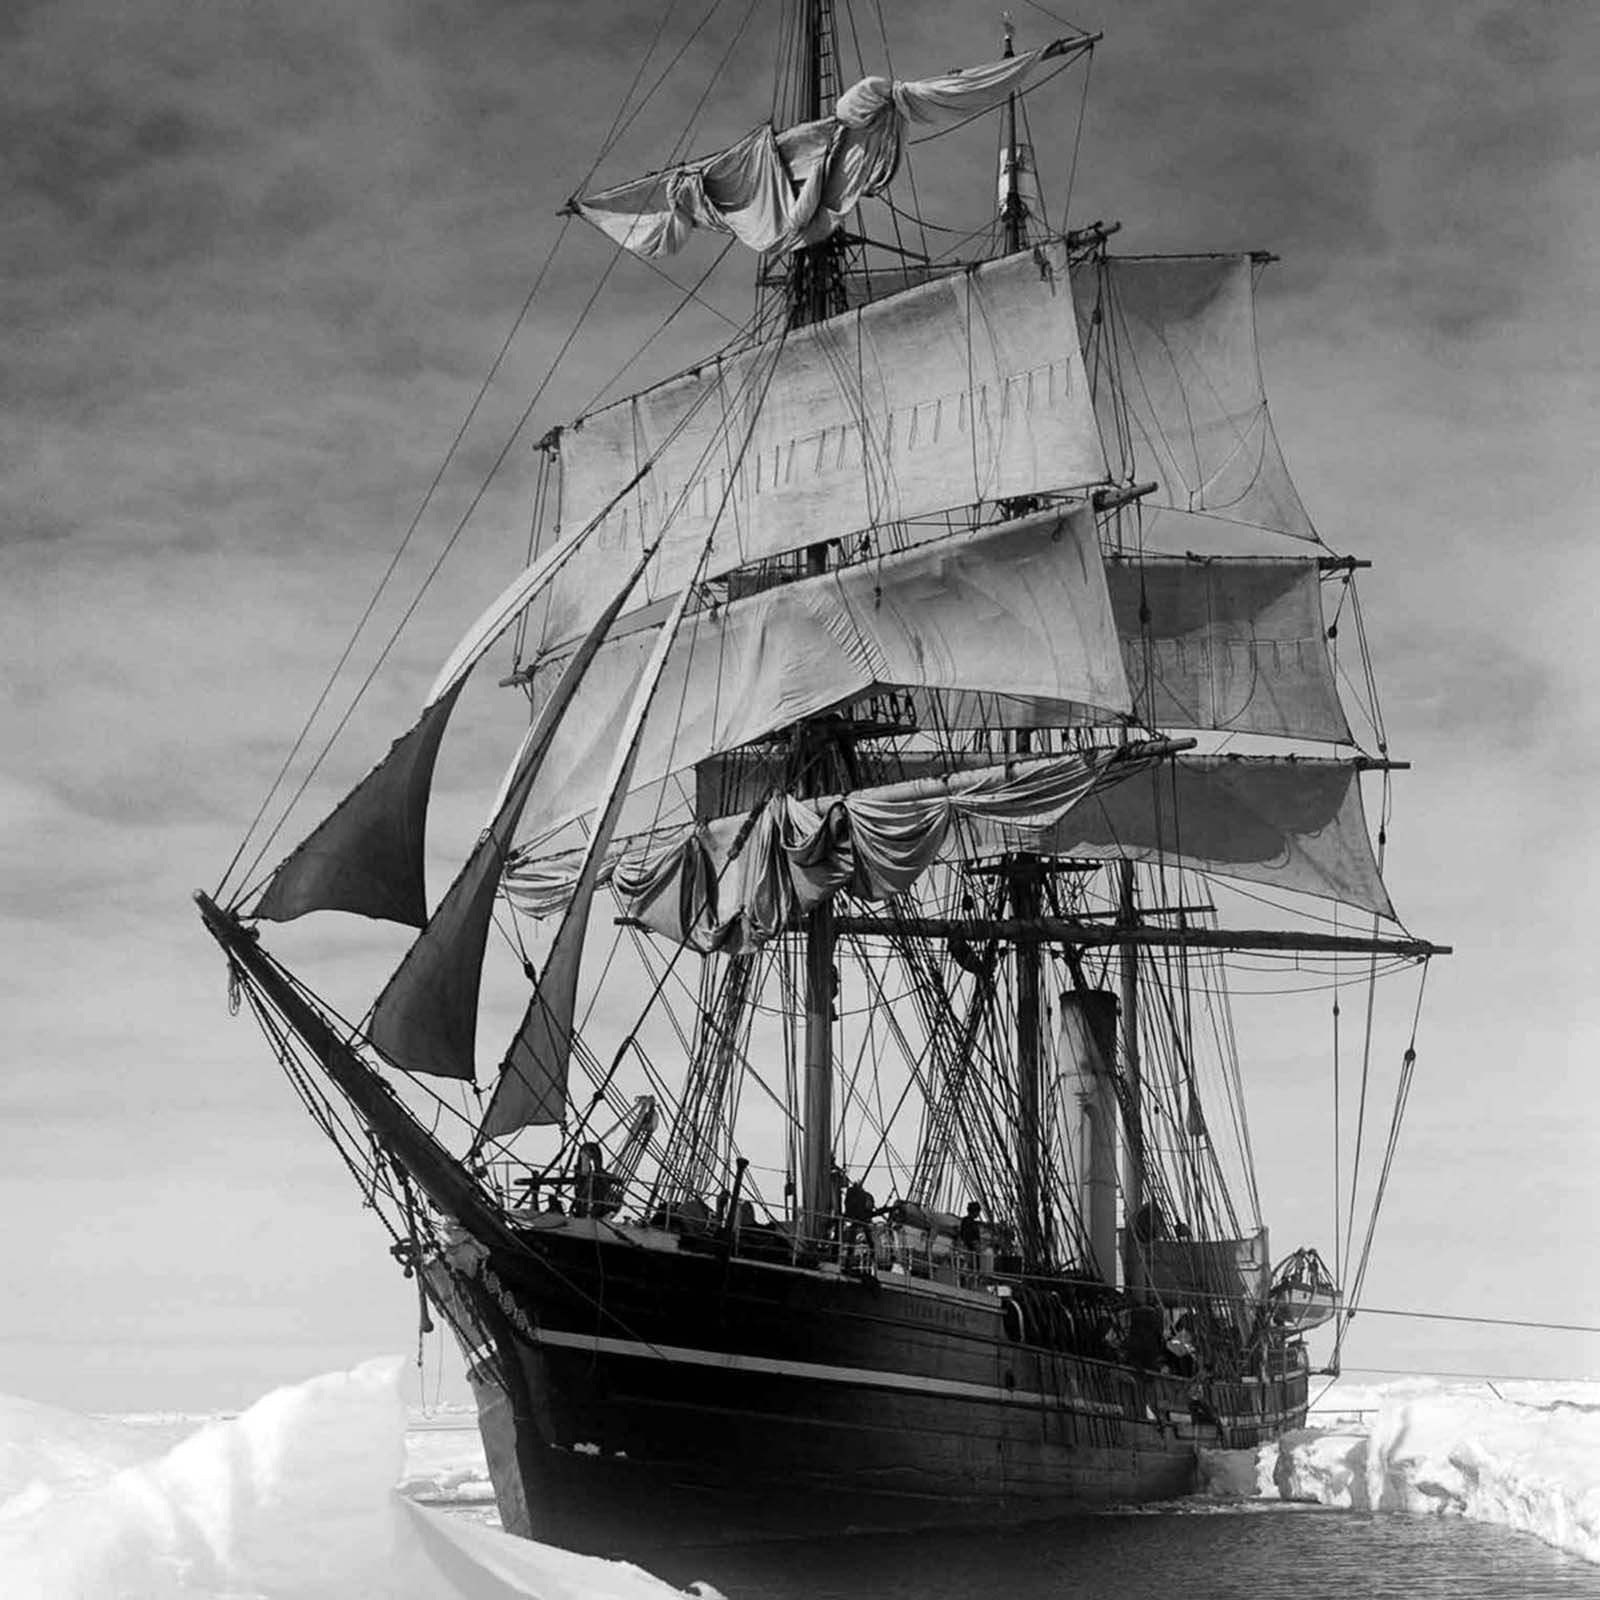 The Terra Nova Expedition, officially the British Antarctic Expedition, was an expedition to Antarctica which took place between 1910 and 1913. It was led by Robert Falcon Scott and had various scientific and geographical objectives. Pictured: The Terra Nova.